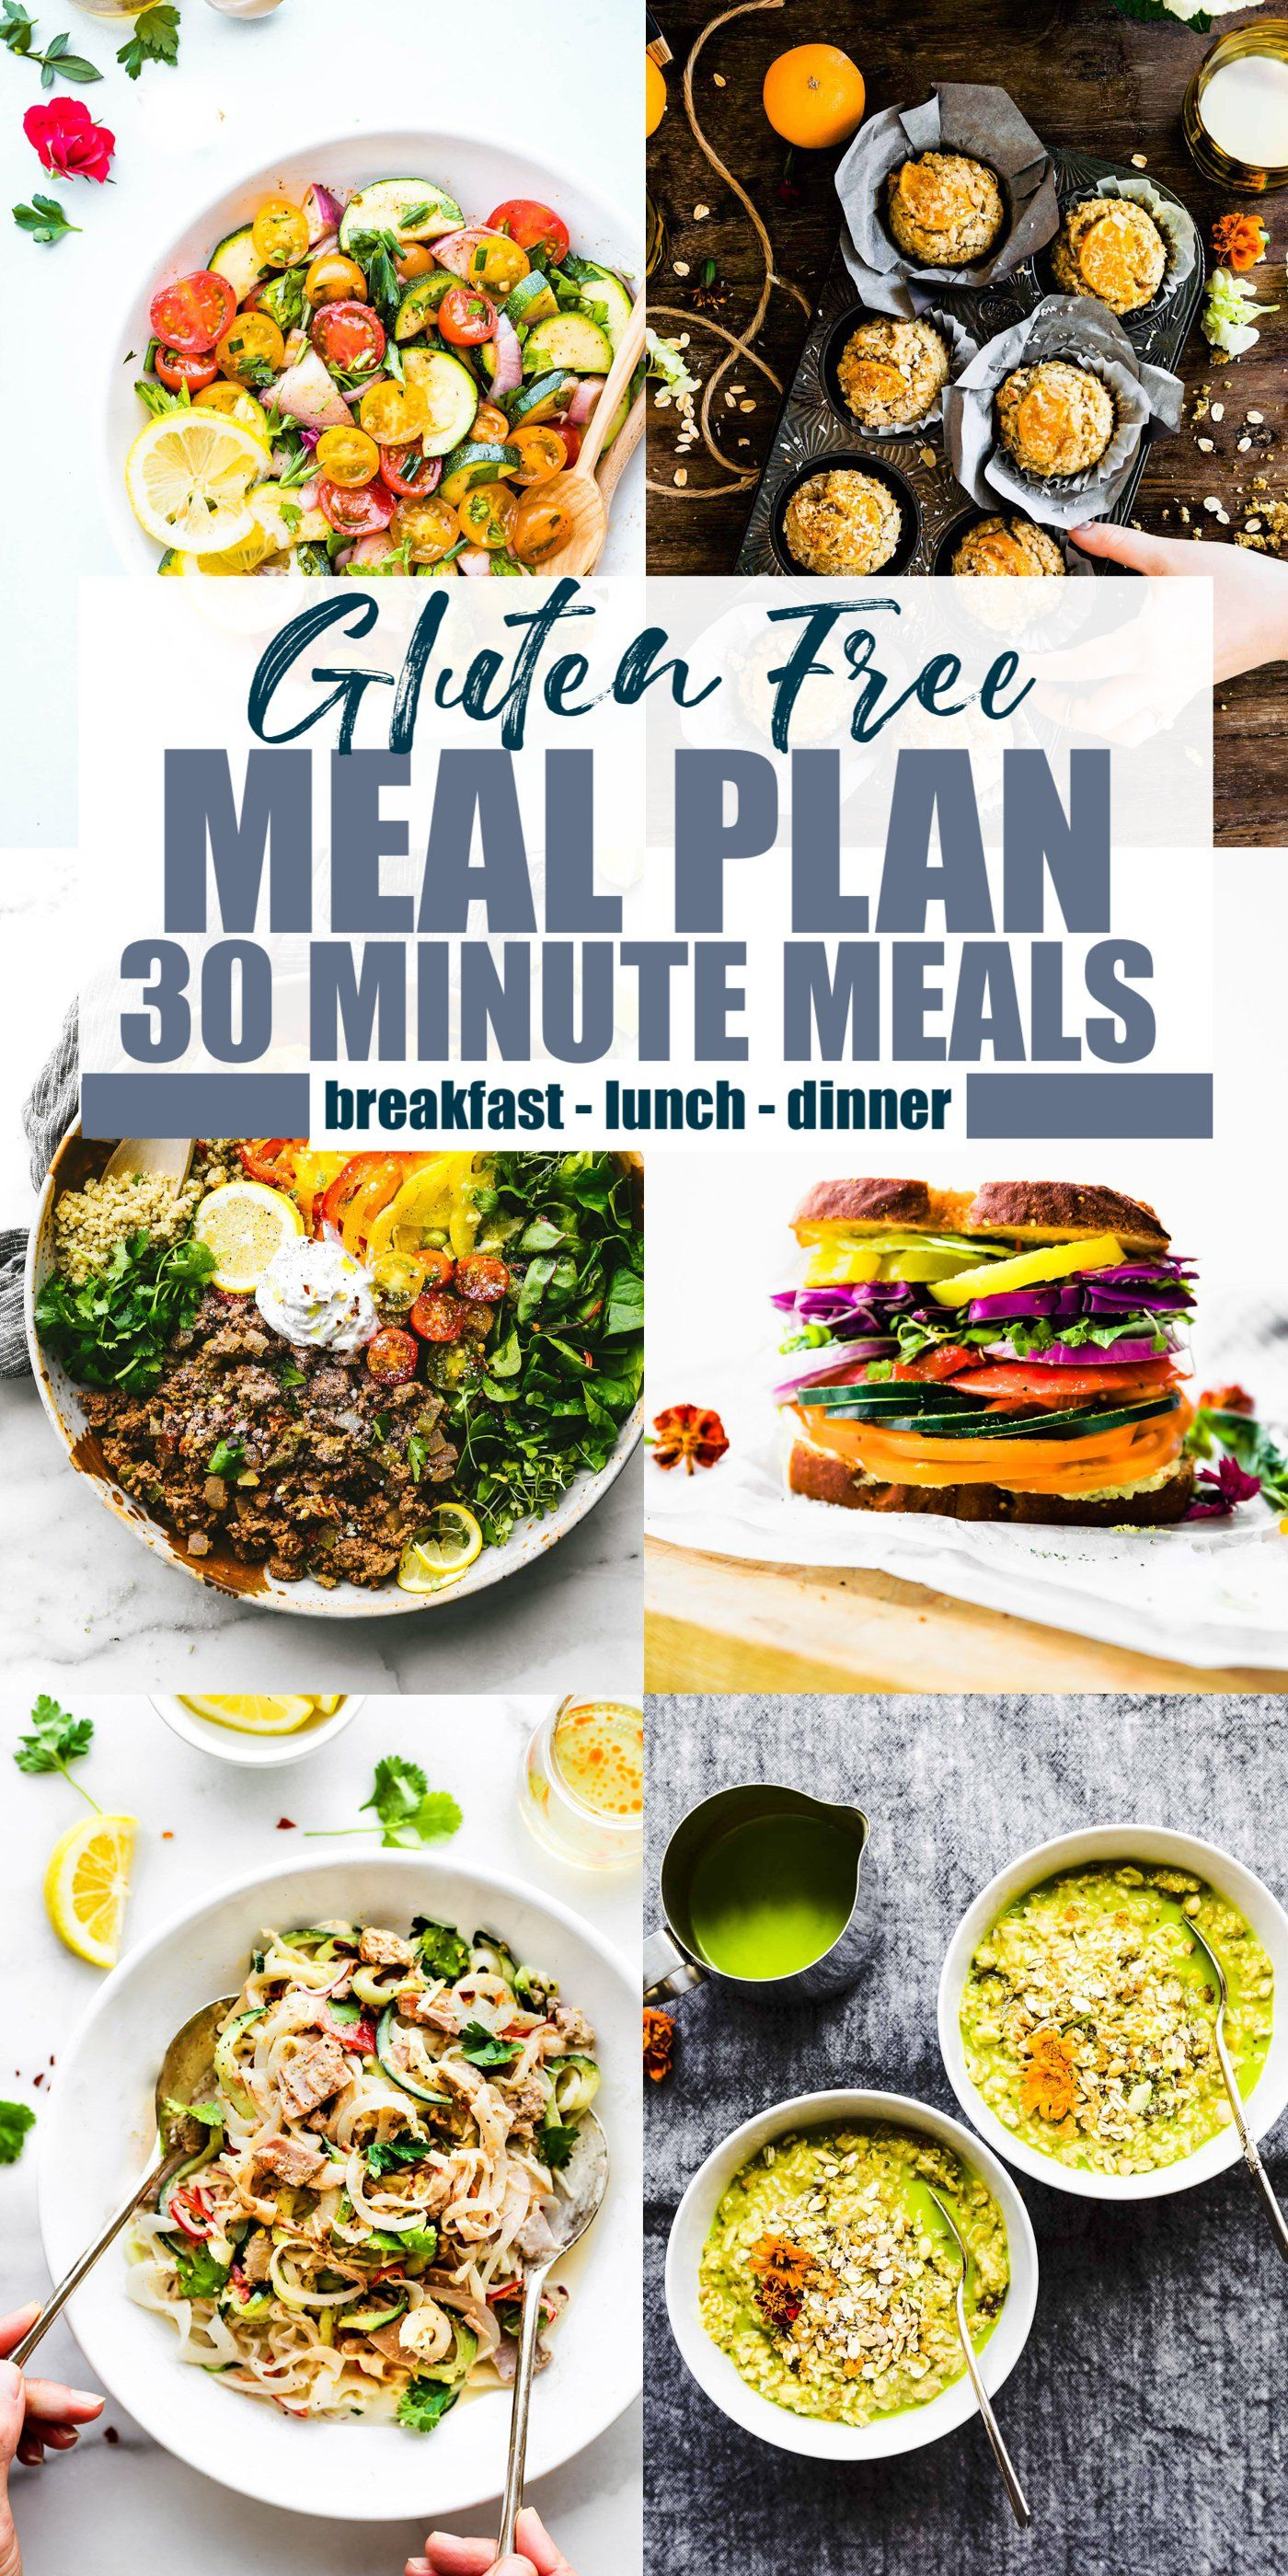 Gluten Free Meal Plan with 30 Minute Meals (or Less!) images